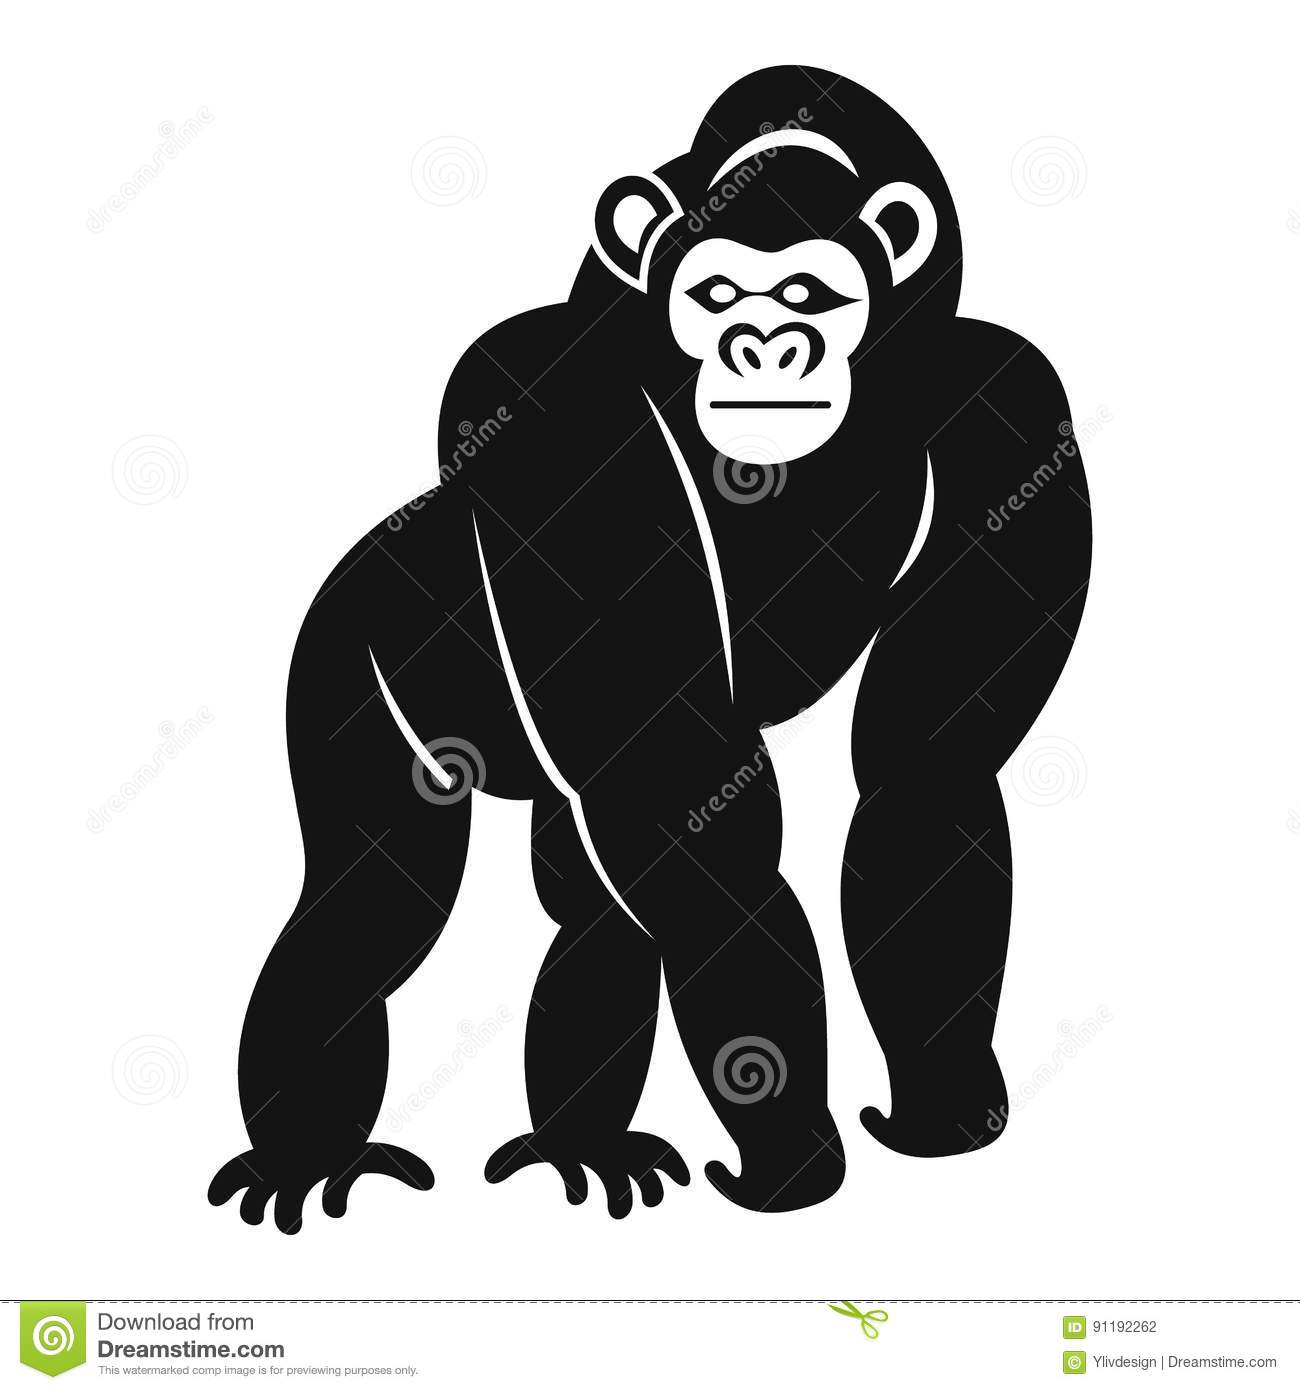 Bonobo clipart #7, Download drawings